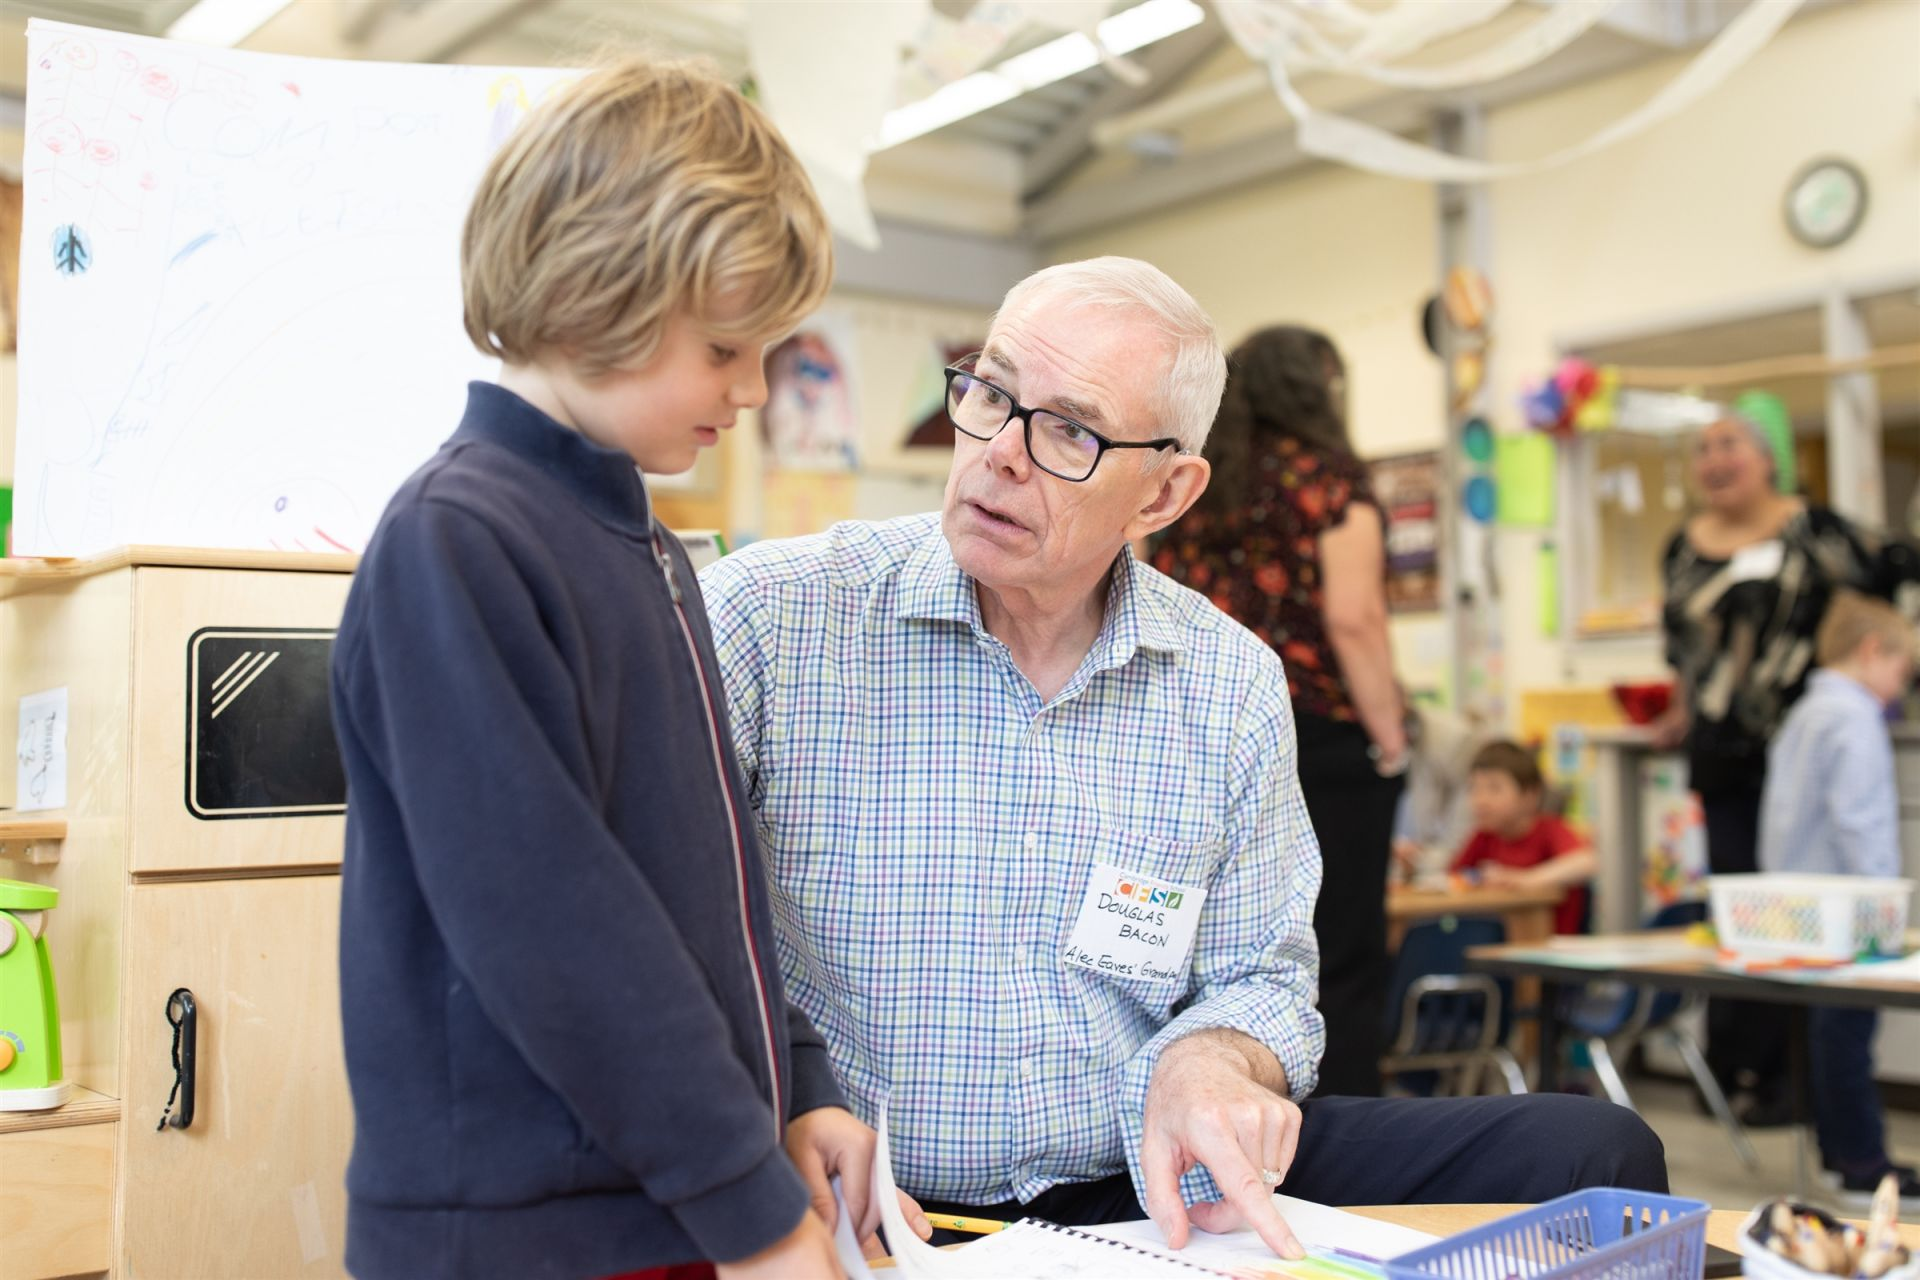 A Kindergarten student and his significant elder discuss something written on a page.